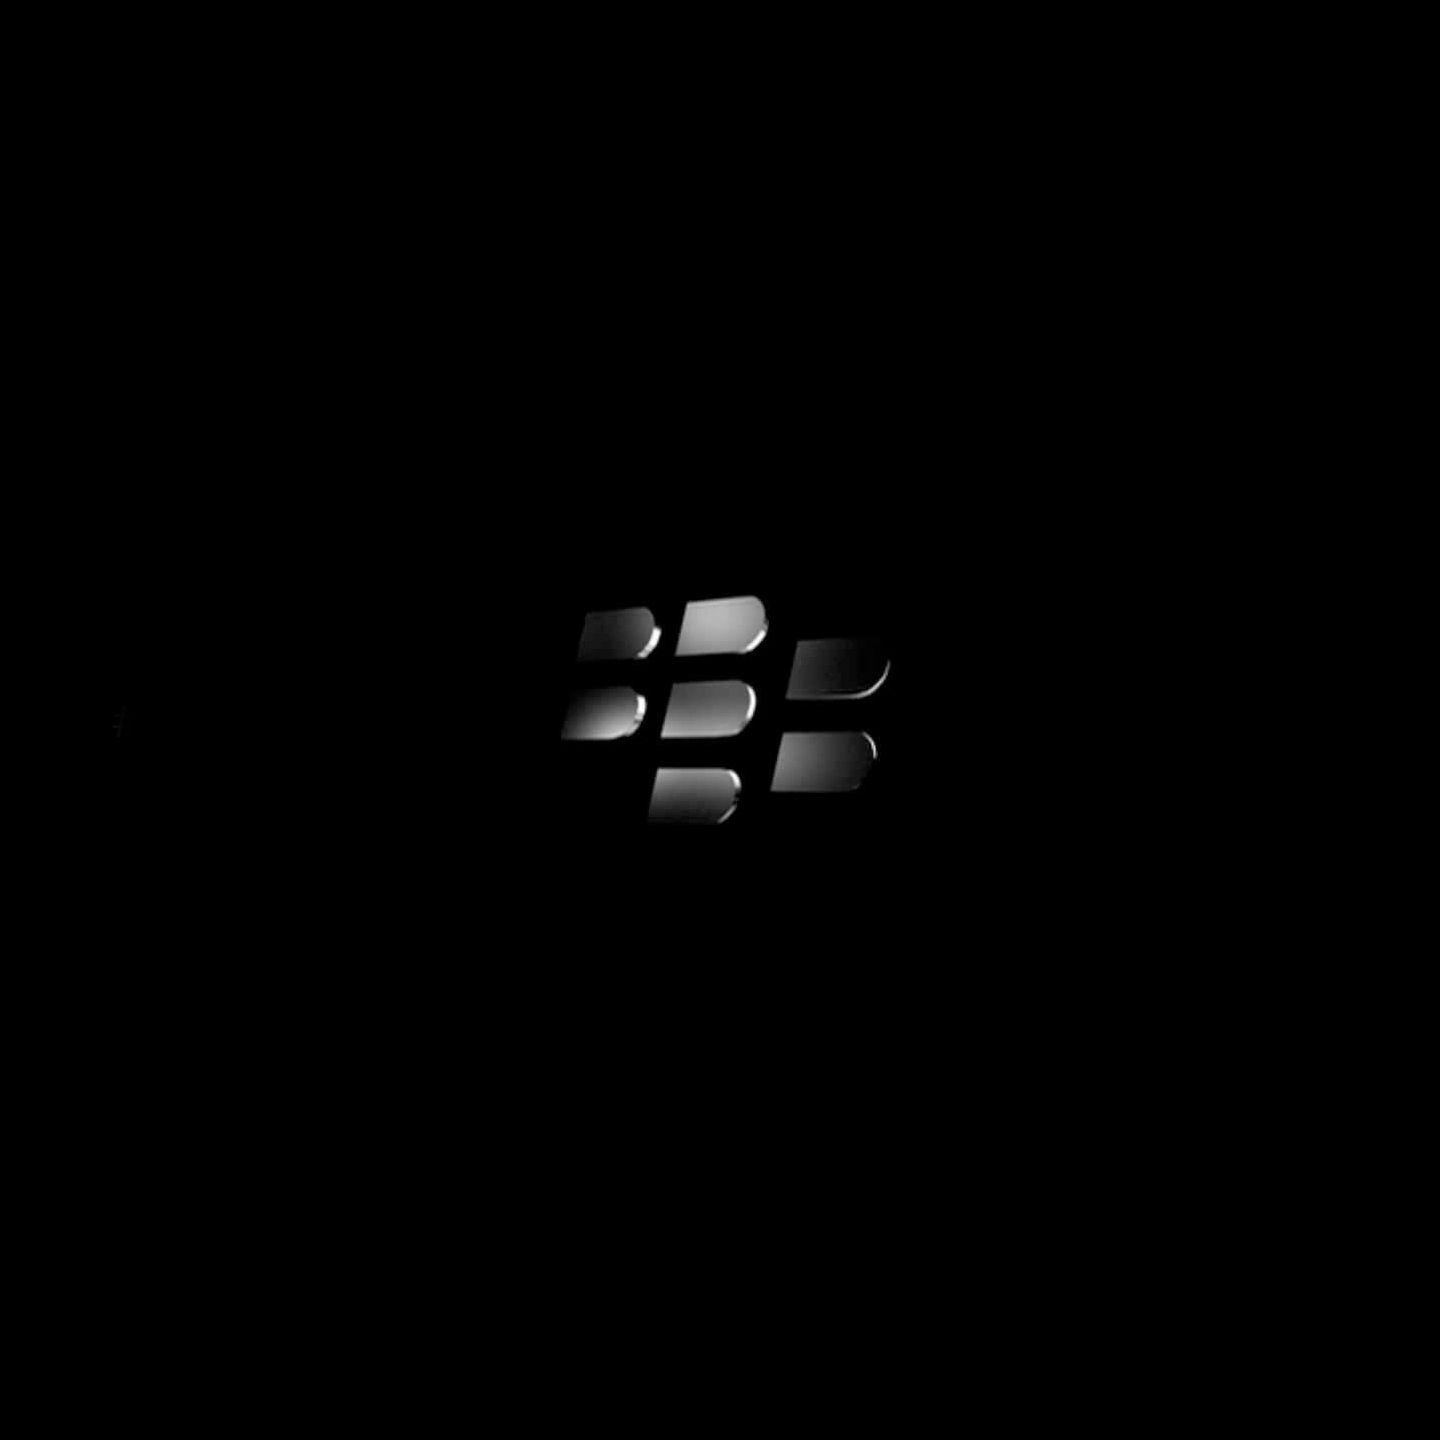 Blackberry Passport Wallpapers Hd Wallpapersafari 其他 In 2019